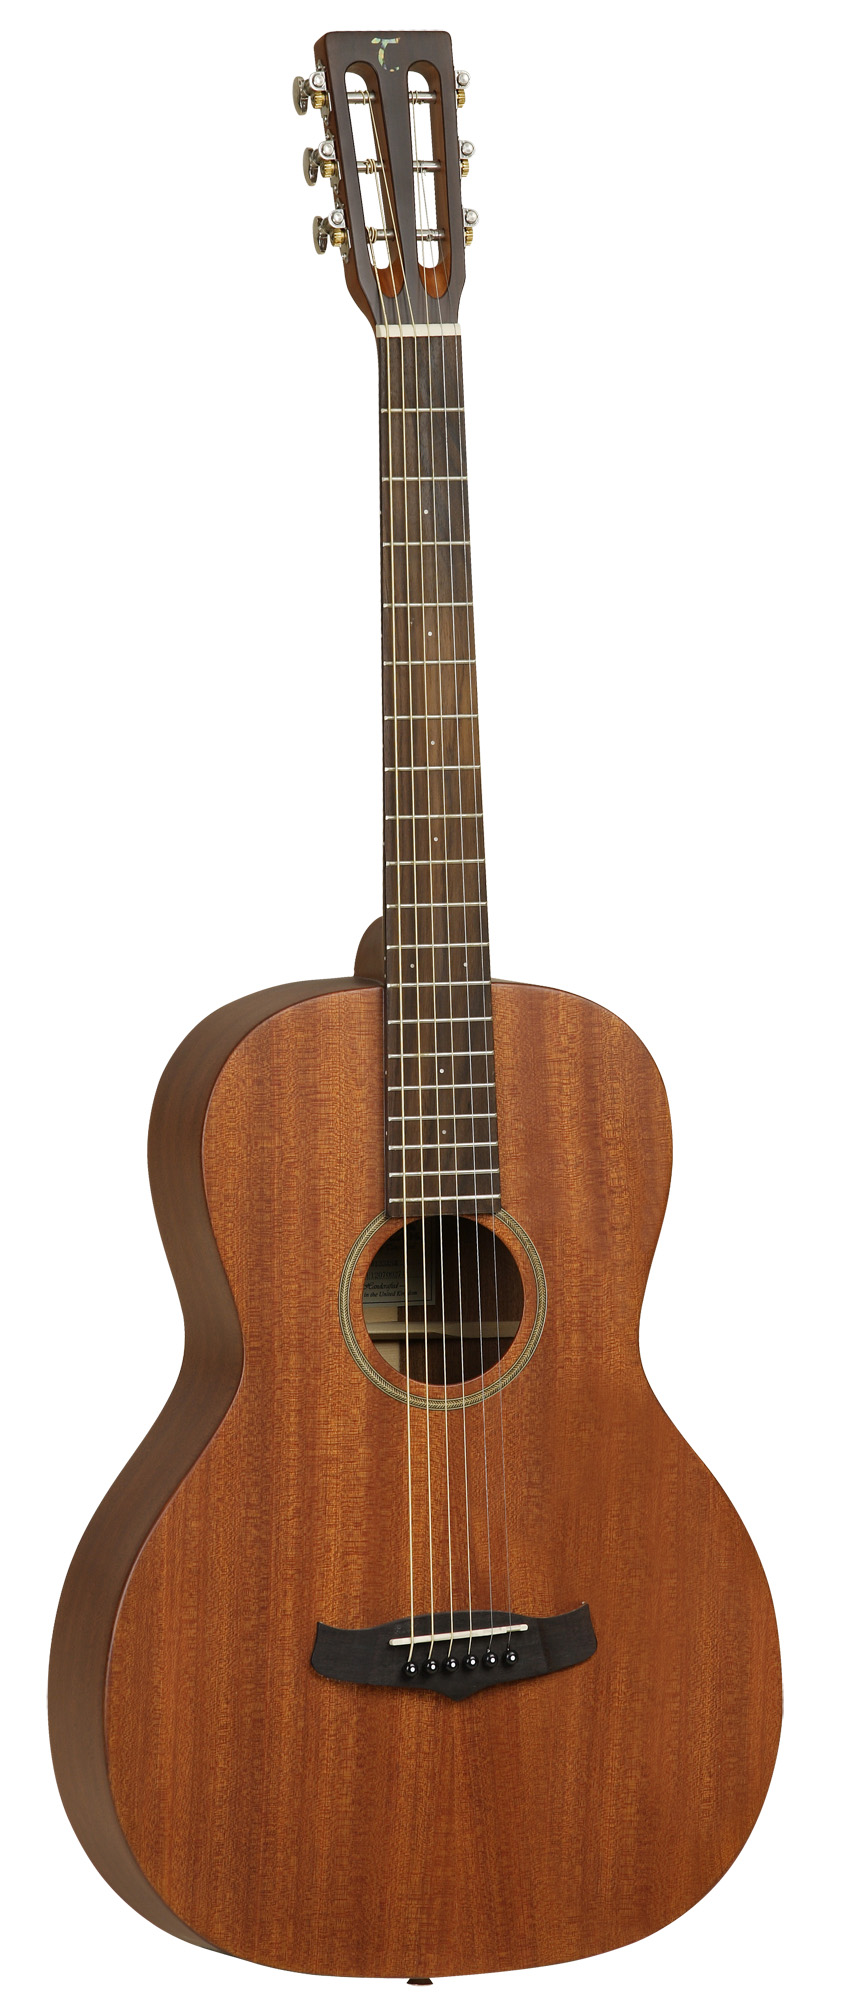 Tanglewood tw133 asm tanglewood guitars manchester for The tanglewood